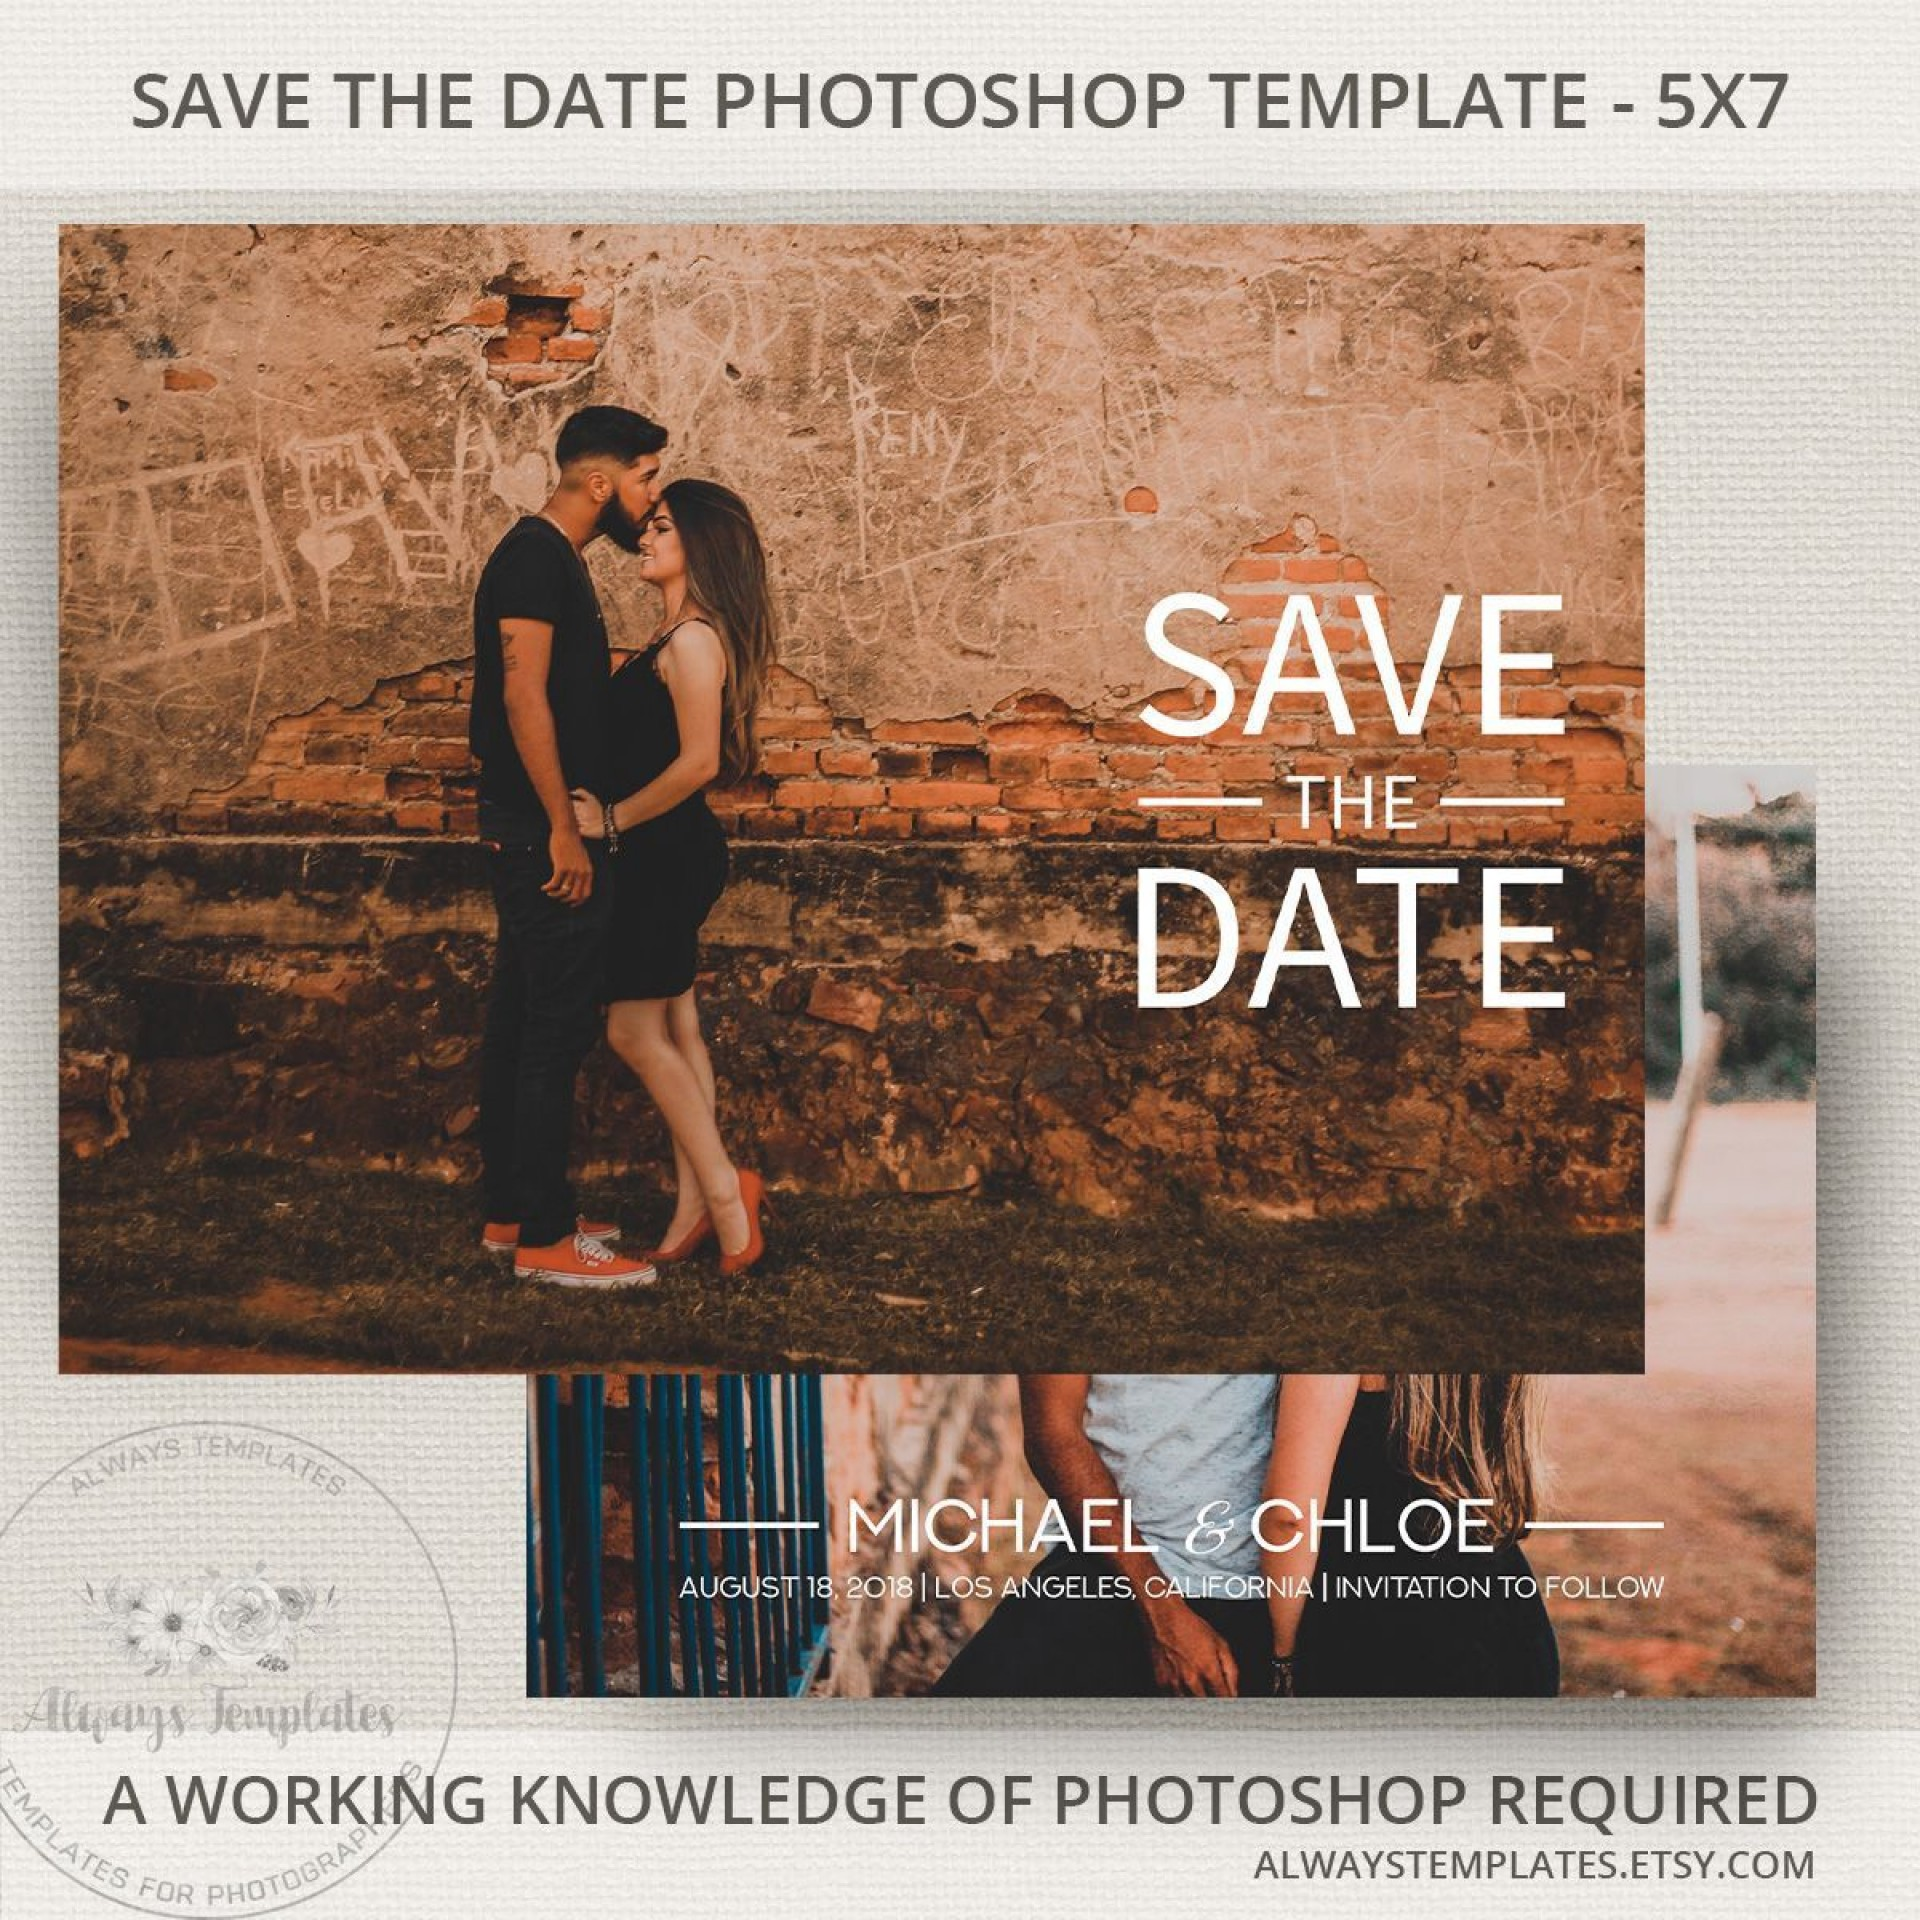 002 Excellent Save The Date Template Photoshop High Resolution  Adobe Card1920